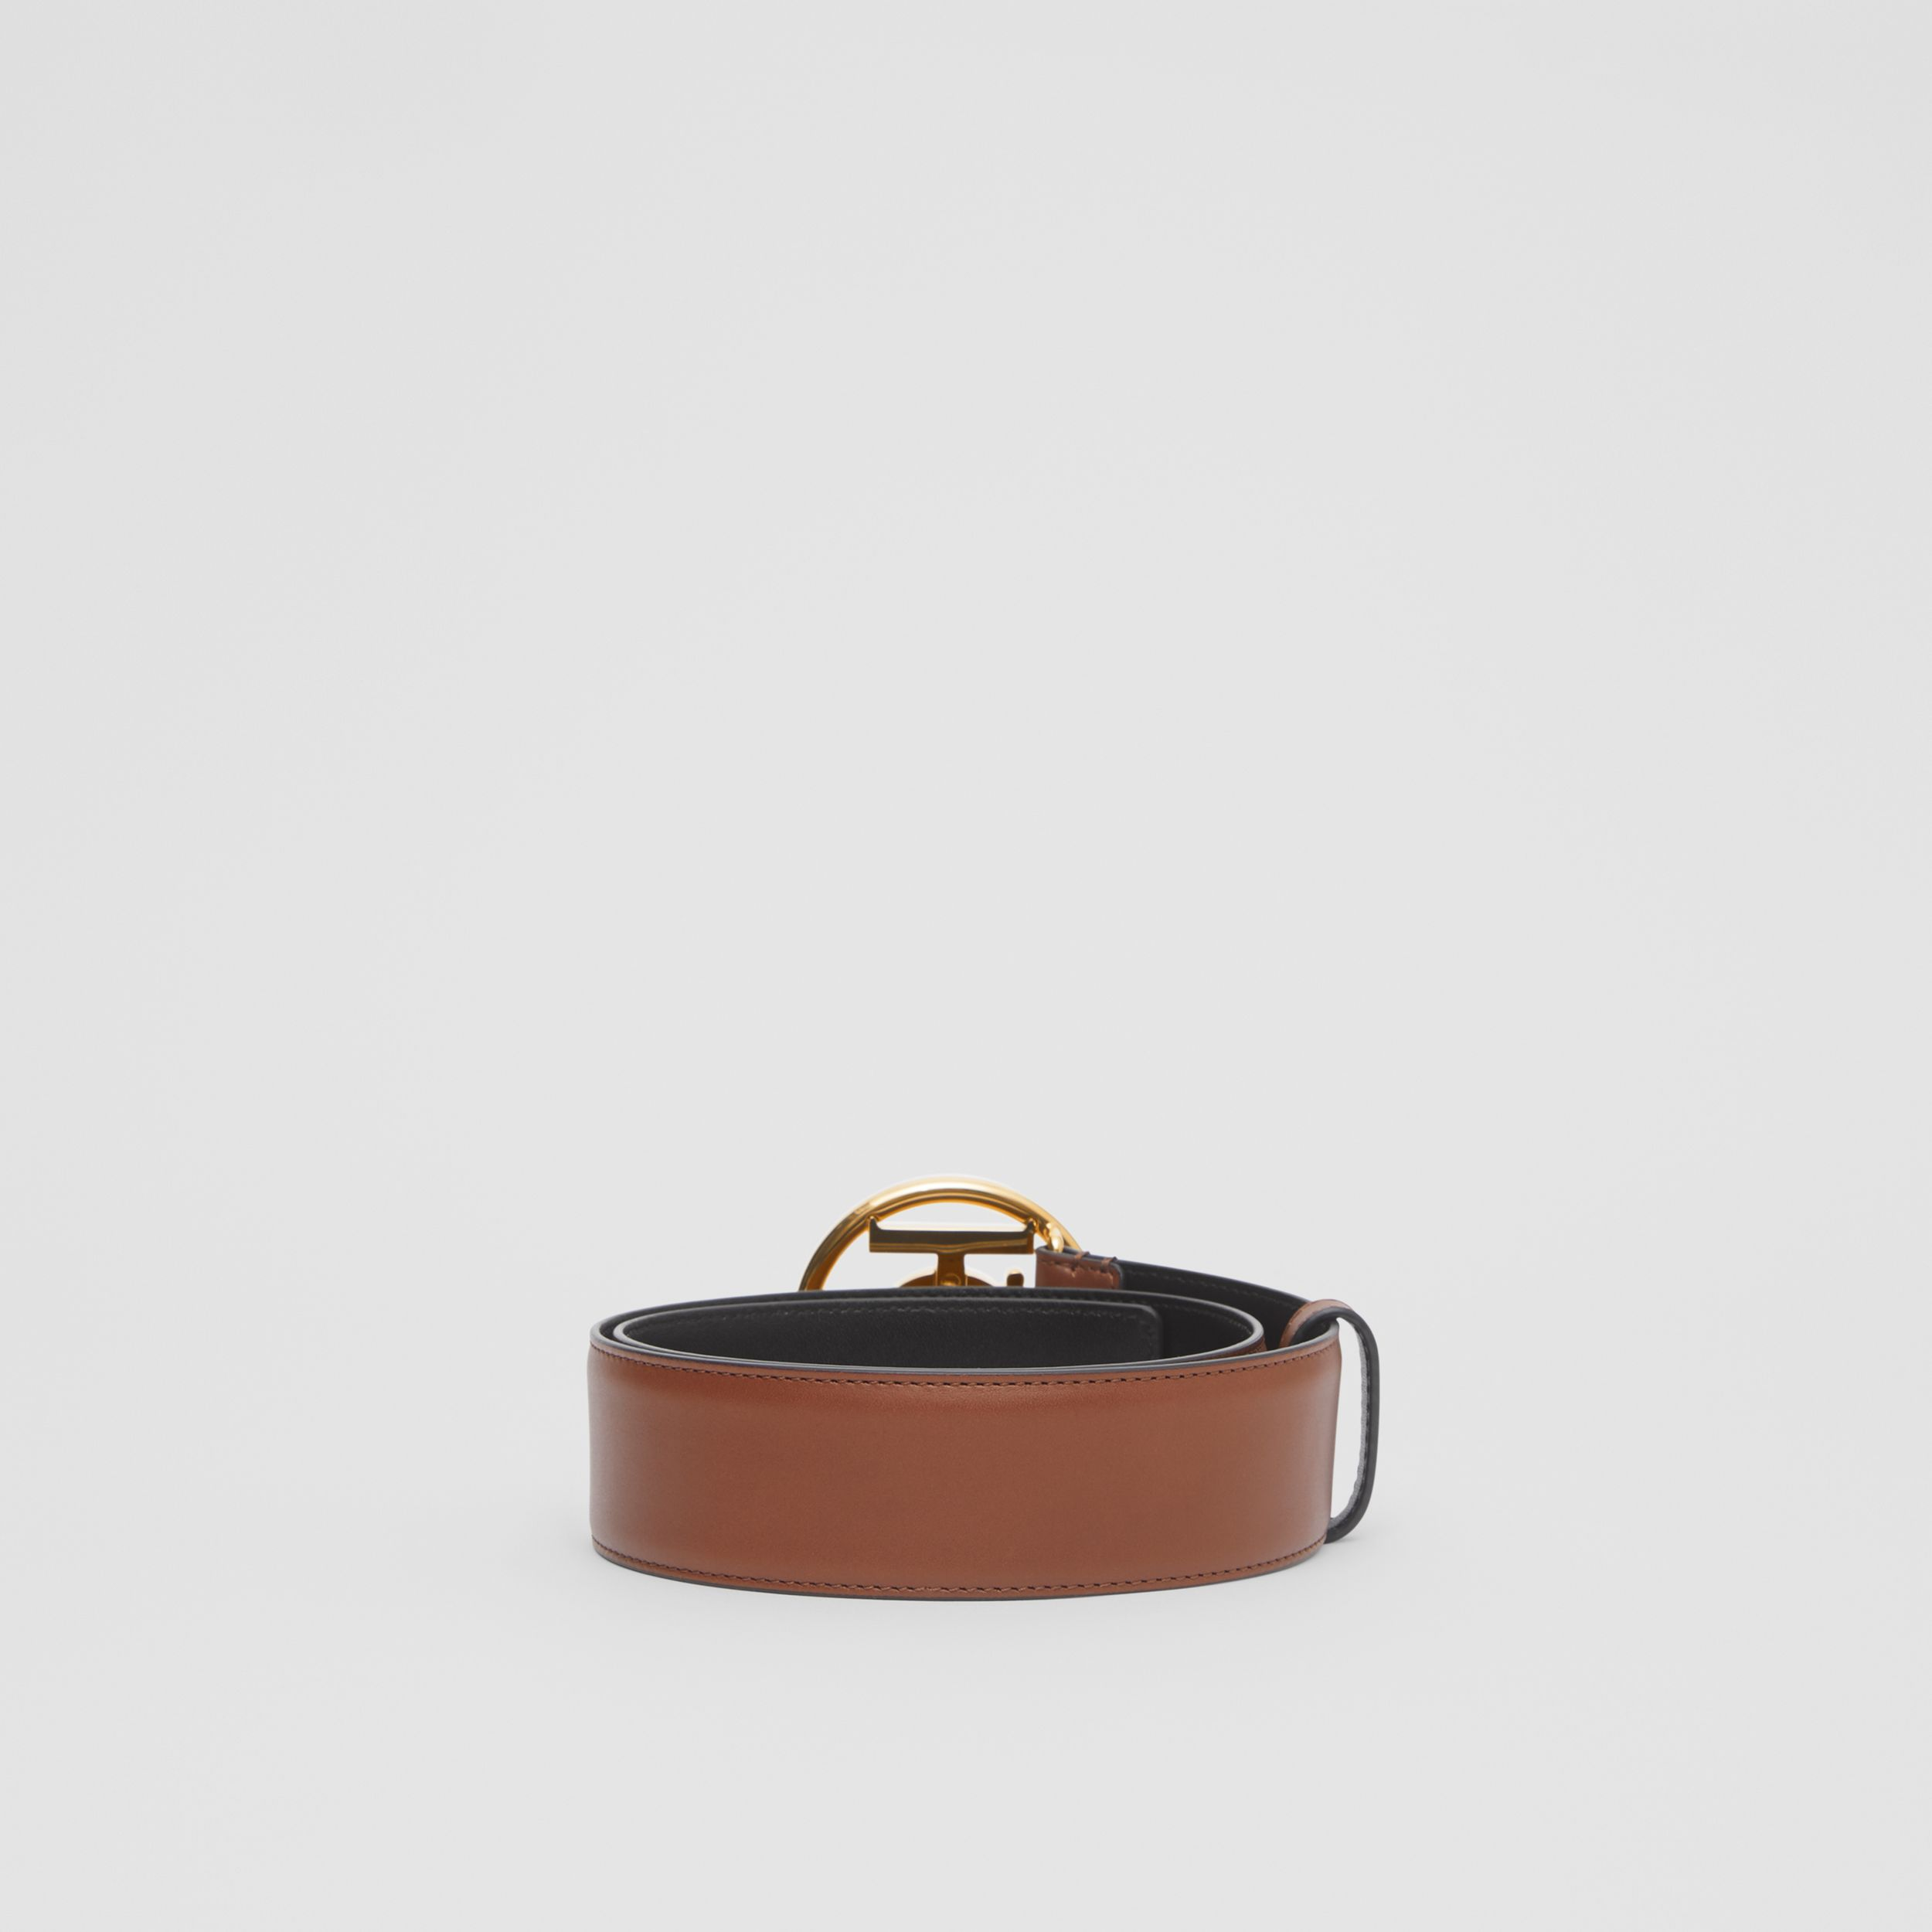 Monogram Motif Leather Belt in Tan/antique Dark Brass | Burberry - 4